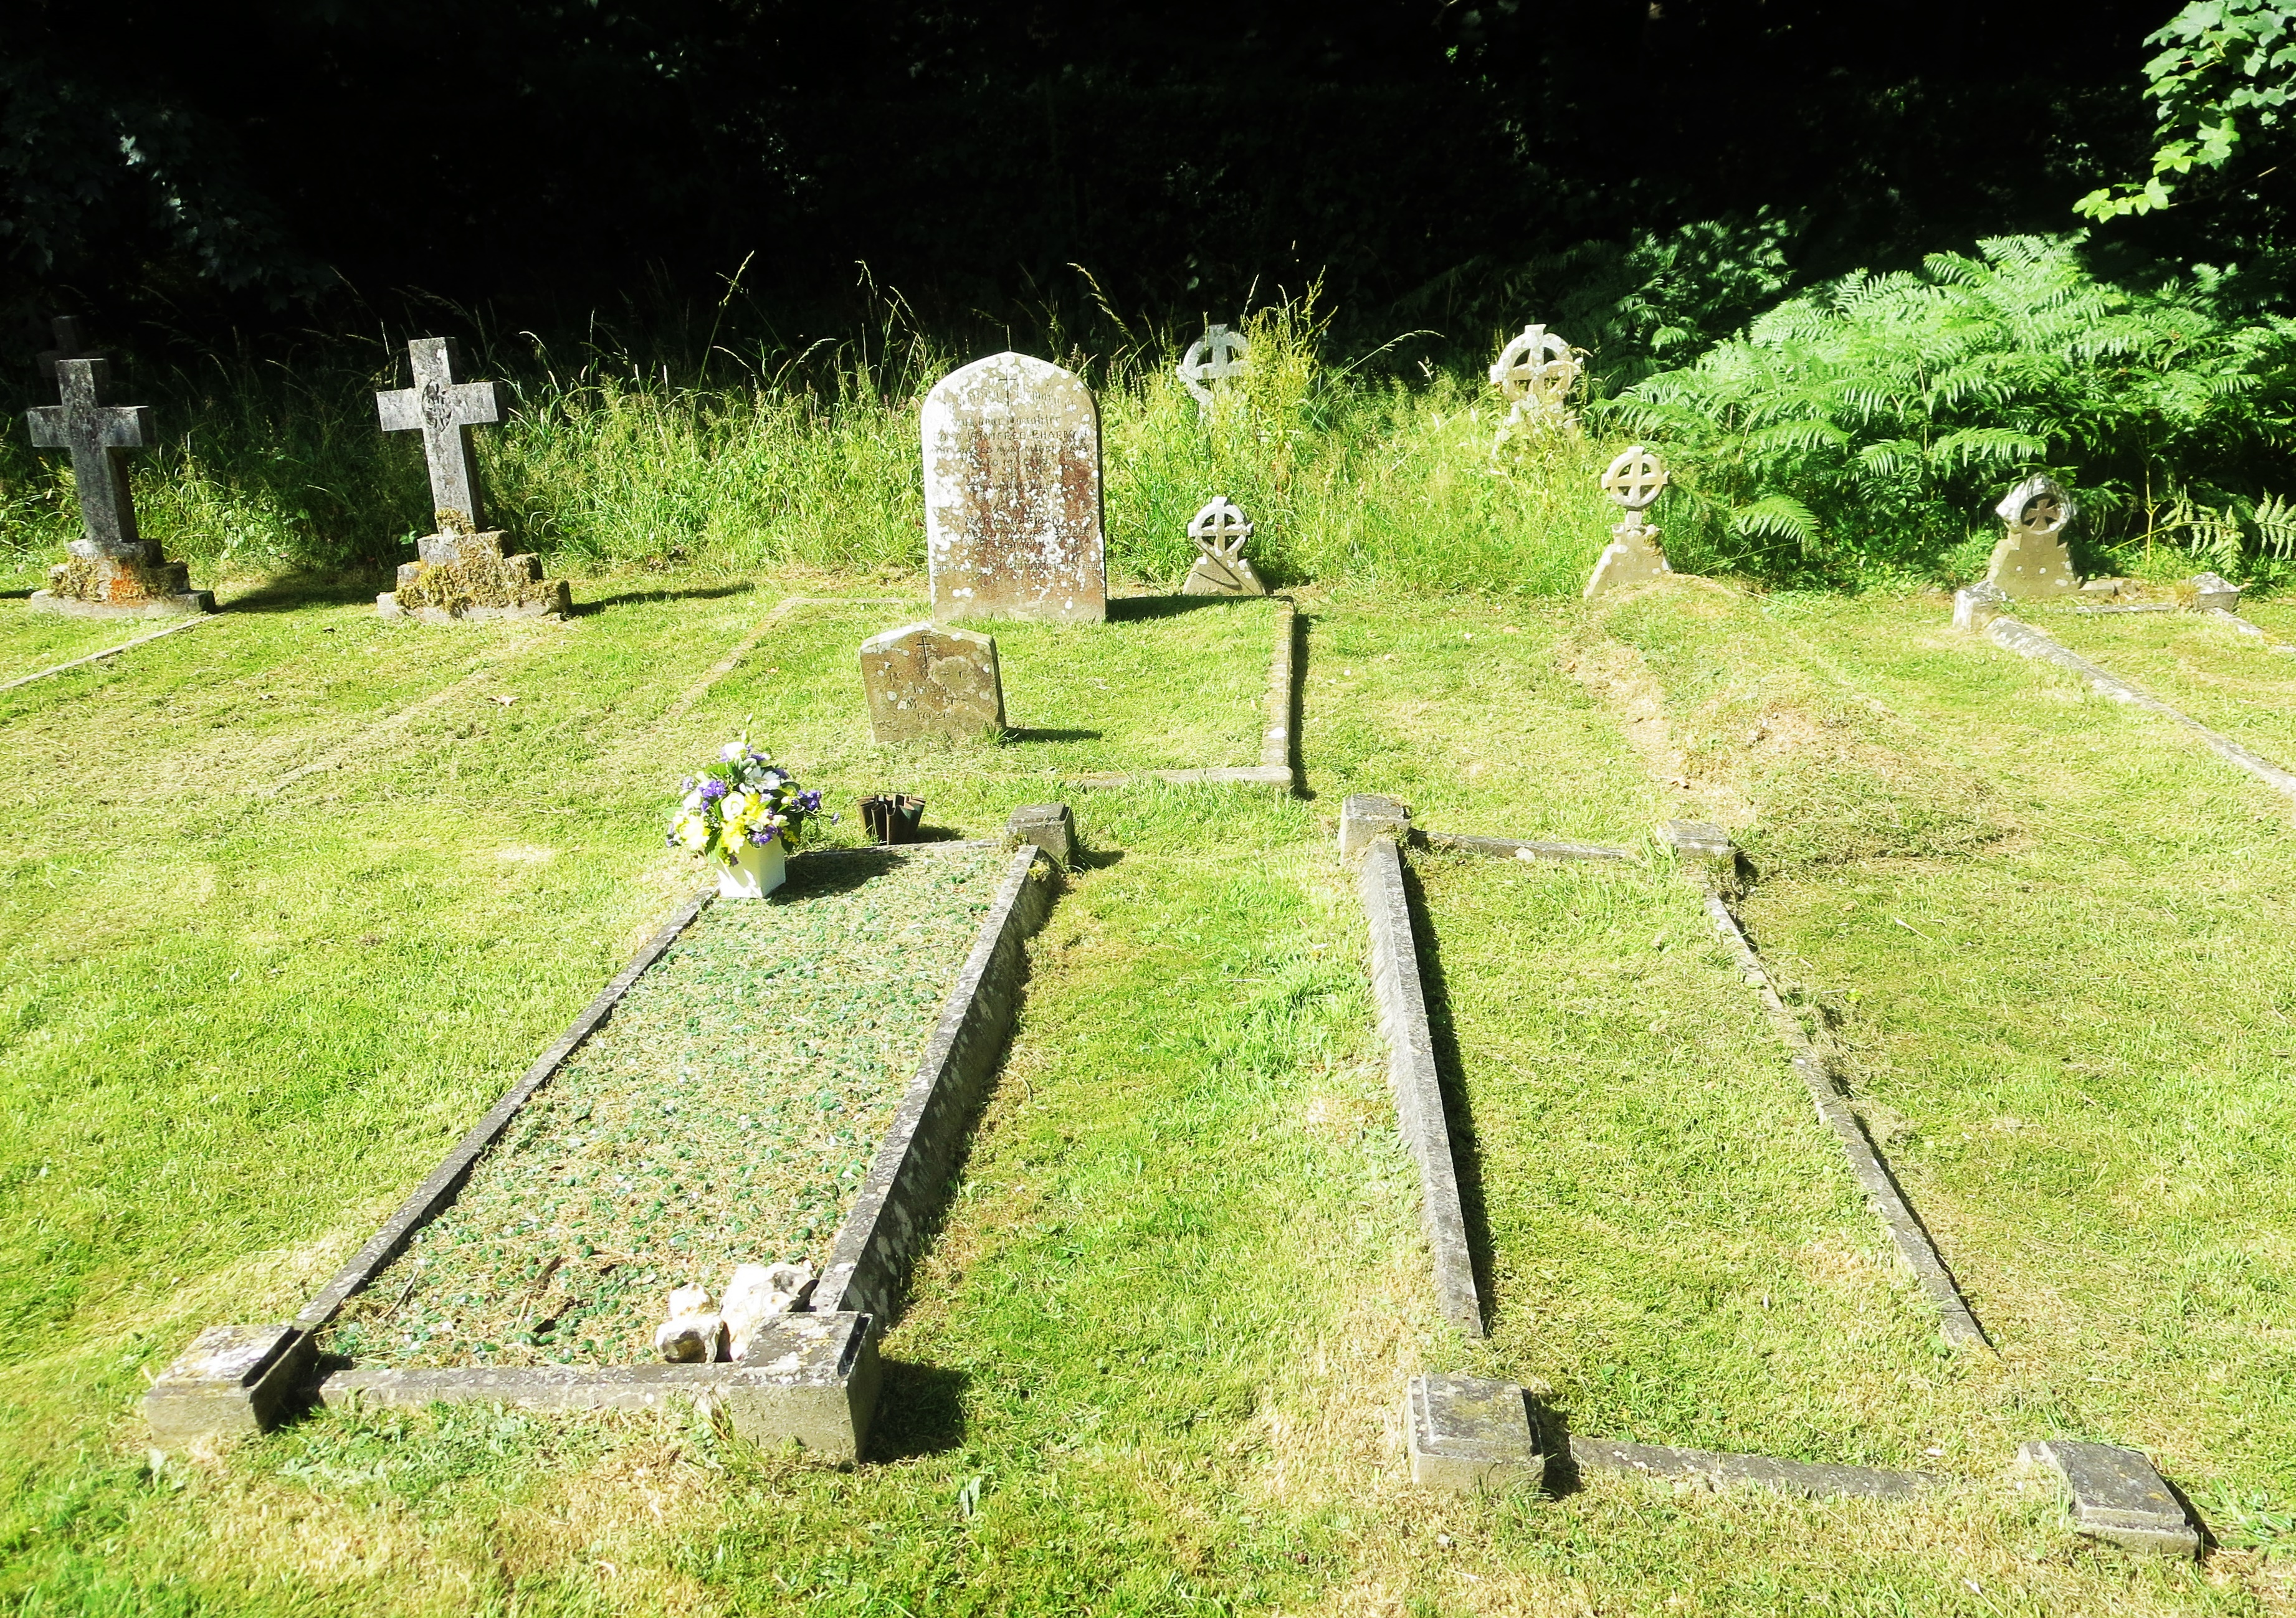 The Buckland and Overton graves. James and Margaret Annie Buckland are buried in the grave with the flowers; James (senior) and Annie Adelaide are to the right, and two rows behind with matching ?Celtic cross headstones are Annie Adelaide's parents Thomas and Ann